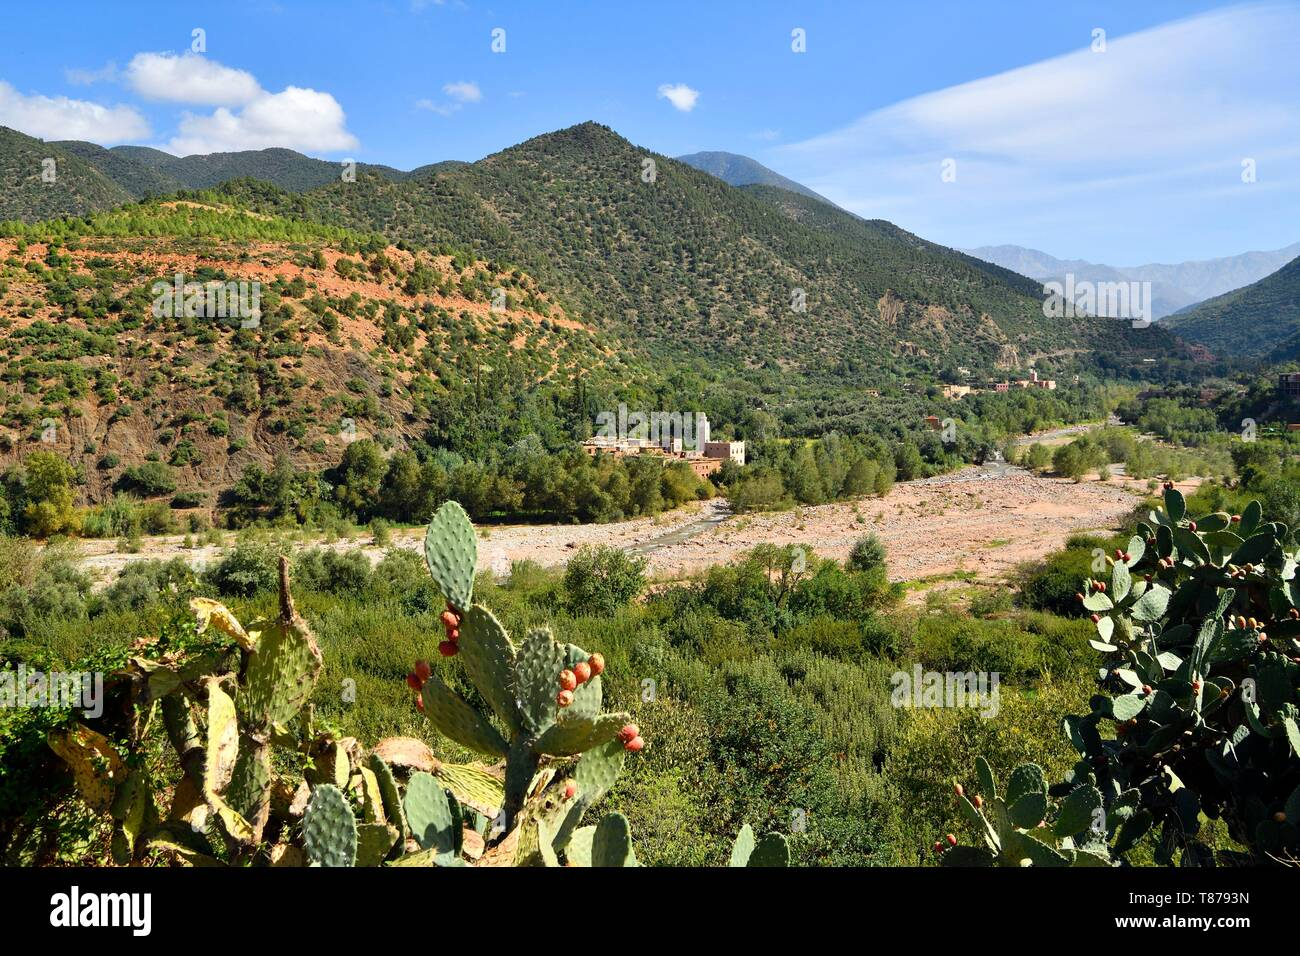 Morocco, High Atlas, Toubkal National Park, Ourika valley, prickly pear - Stock Image